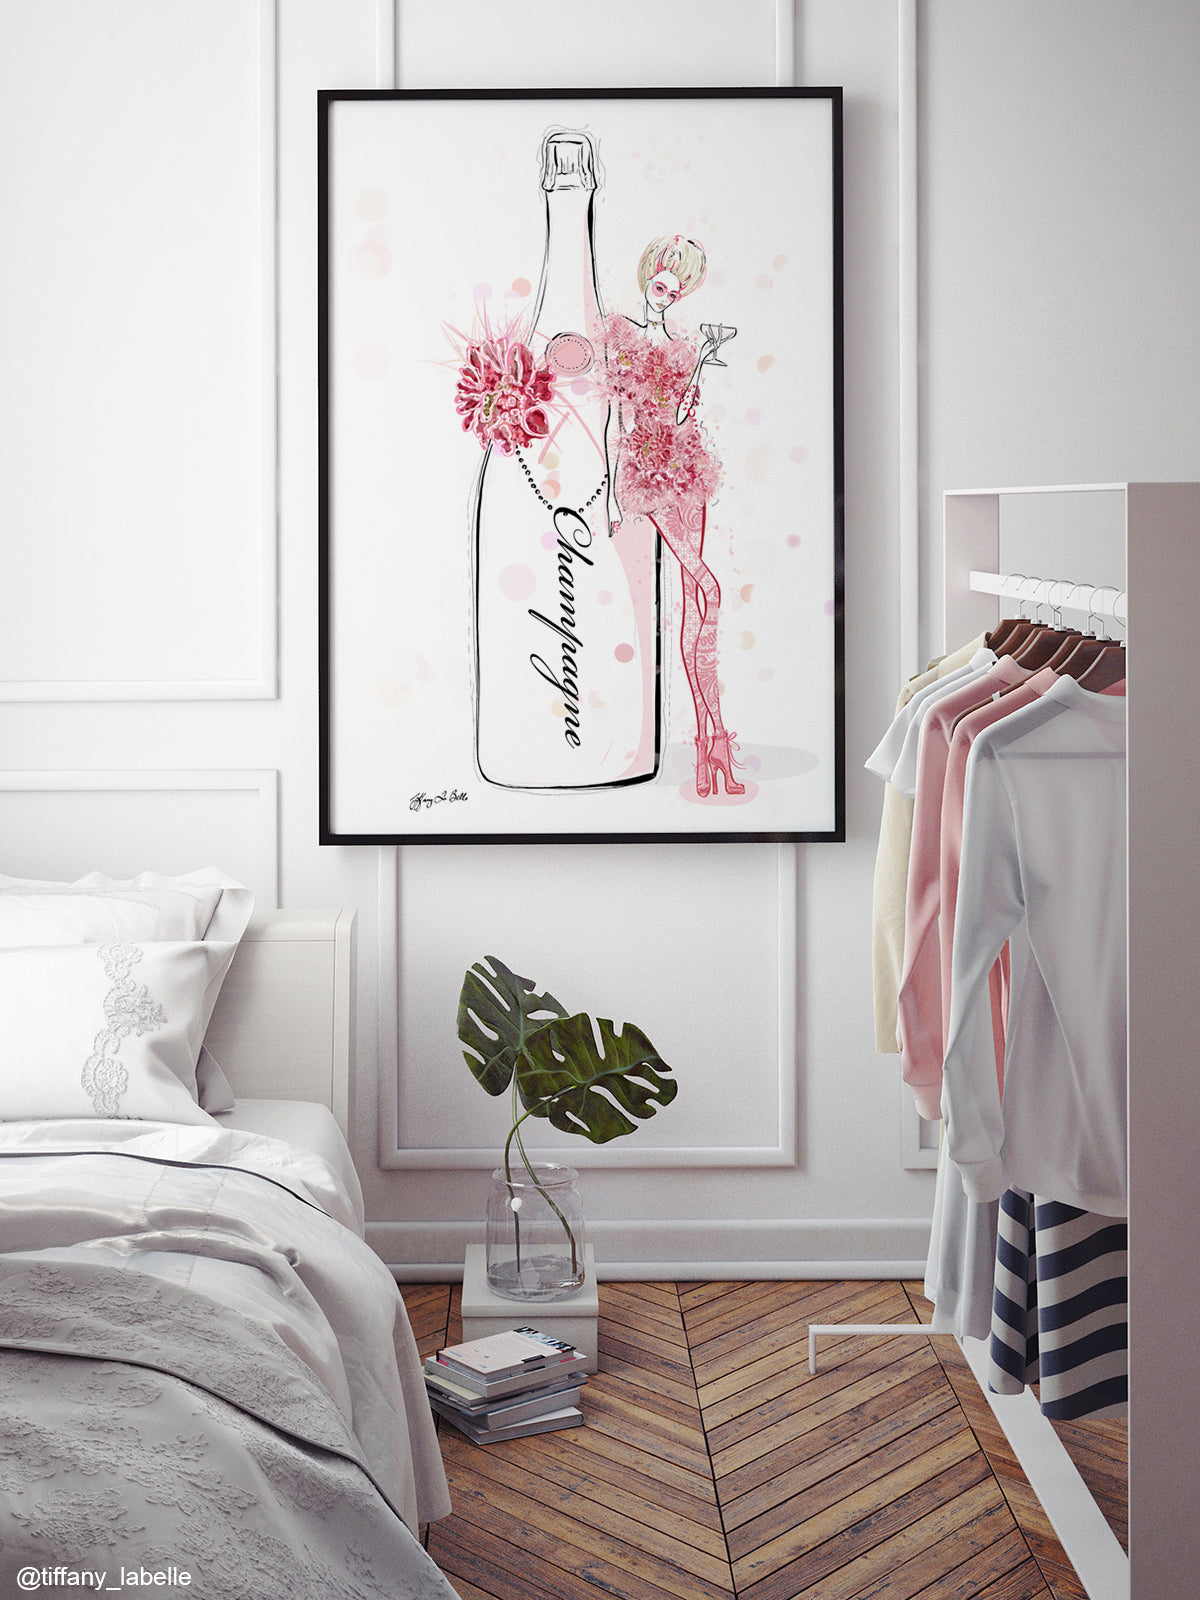 Champagne Bubbles in Elie Saab Floral - Illustration - Limited Edition Print - Tiffany La Belle